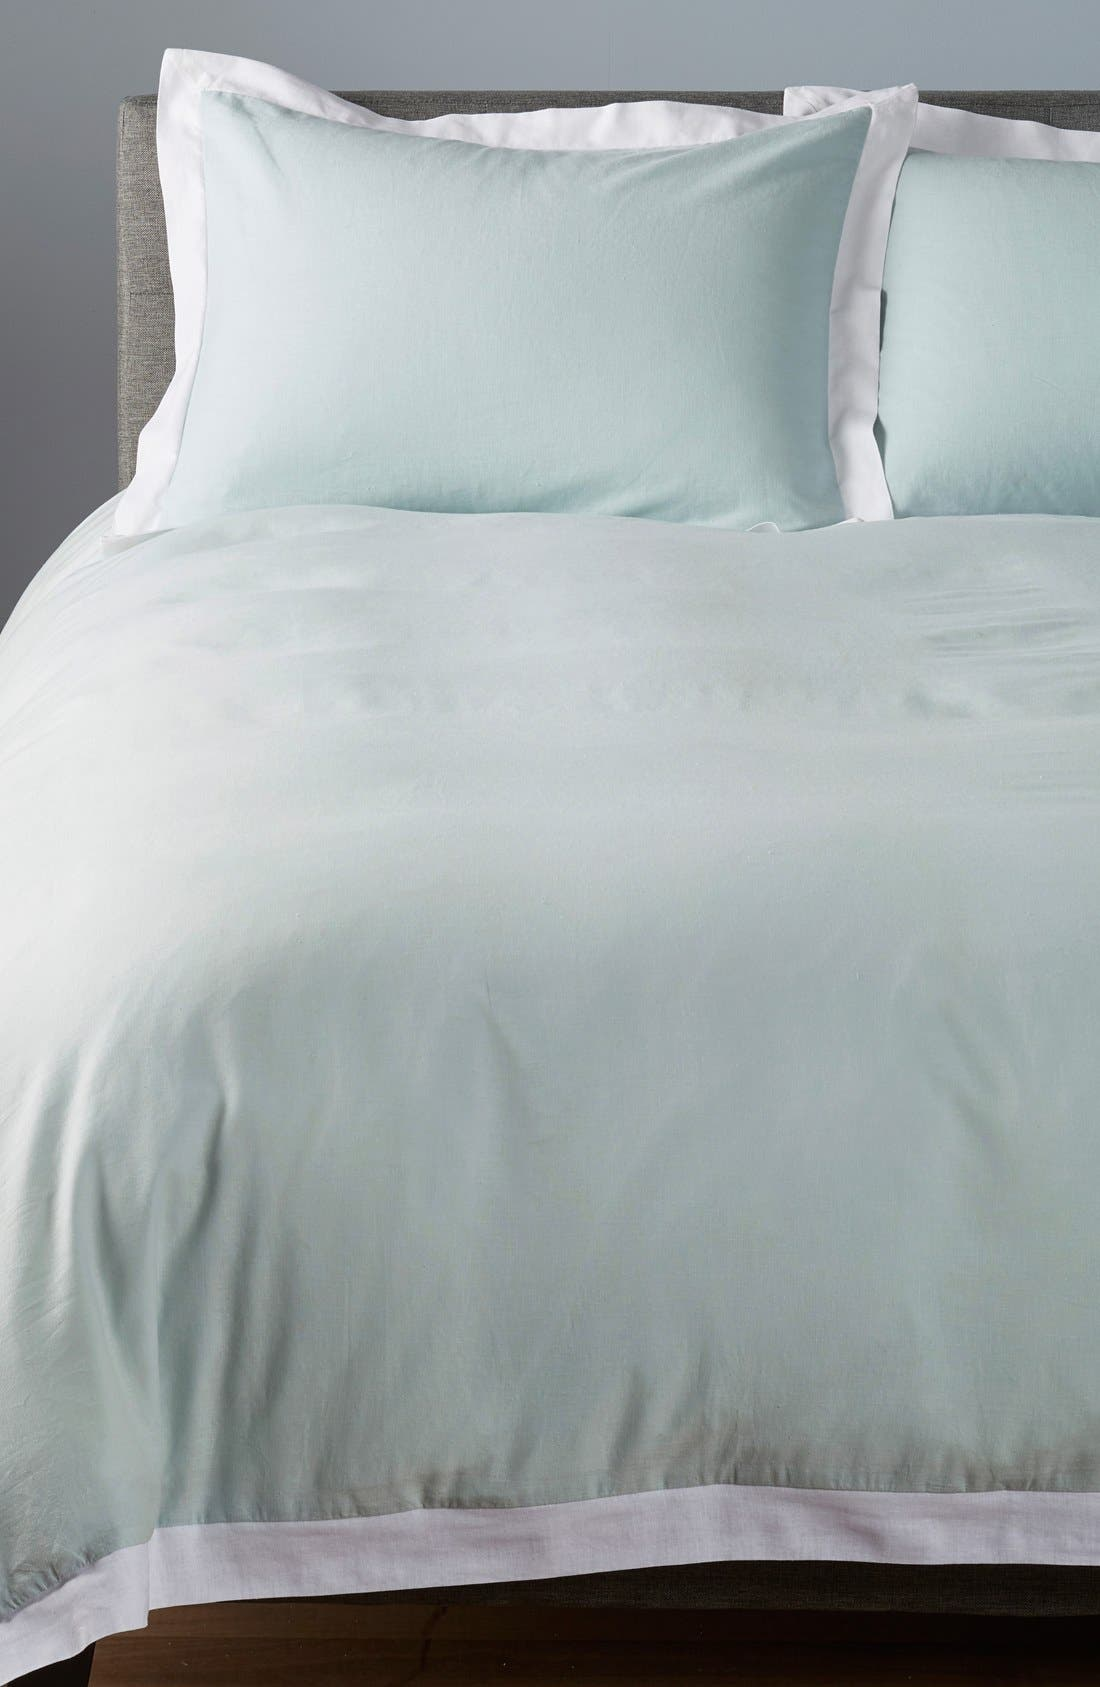 Alternate Image 1 Selected - Levtex 'Spa' Washed Linen Duvet Cover